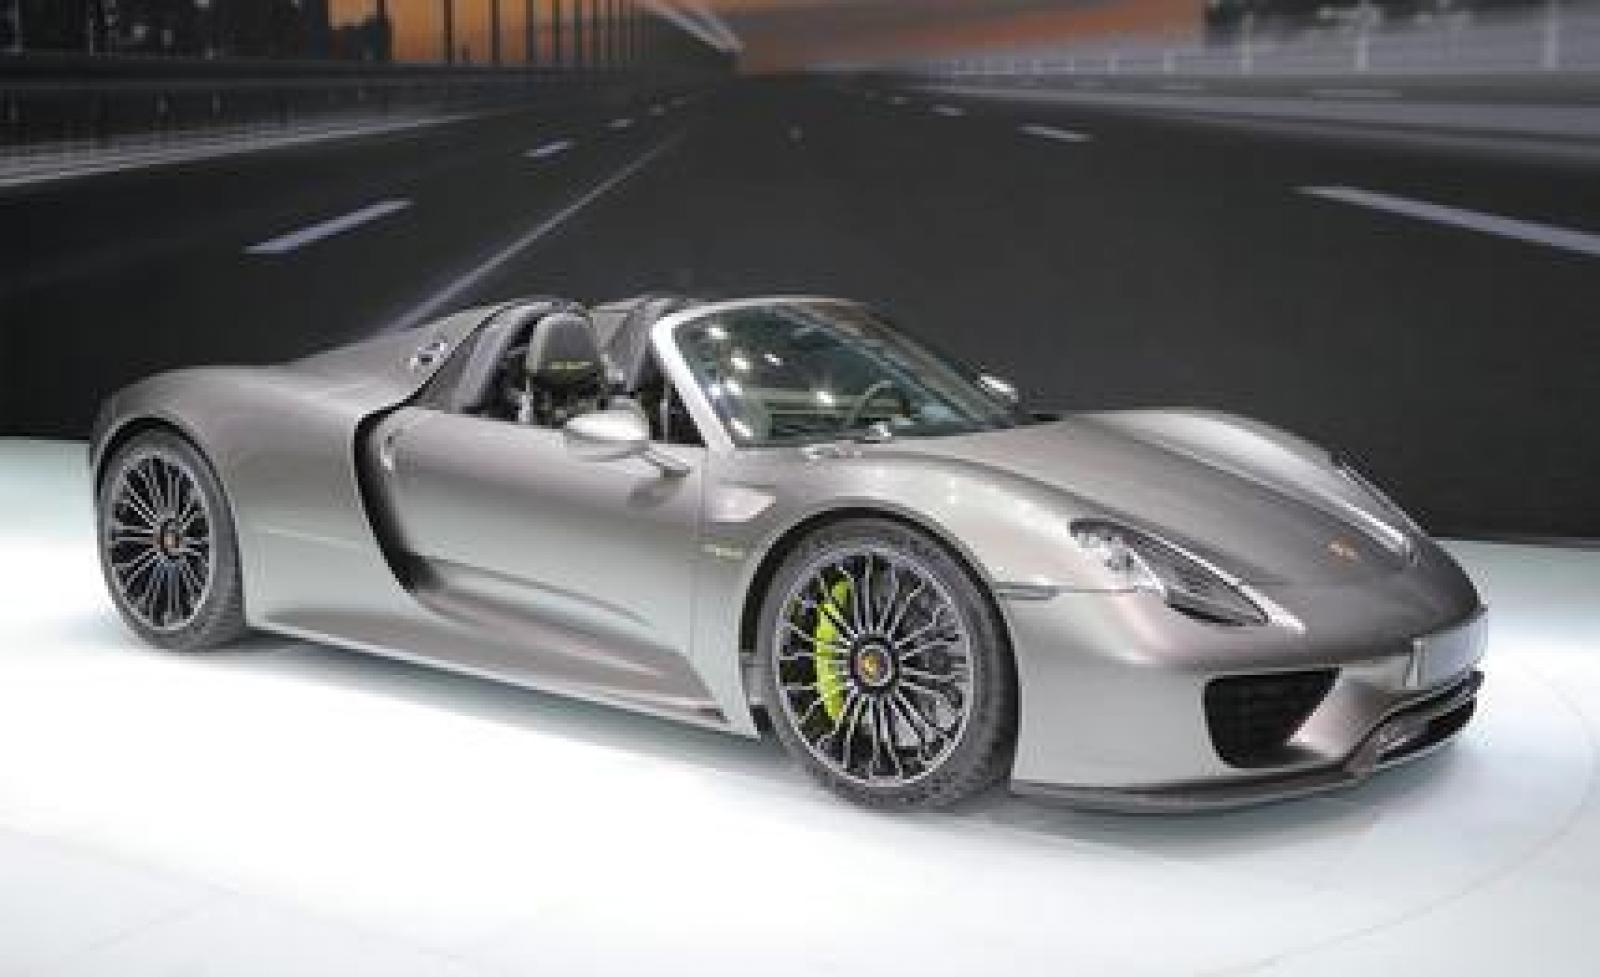 2015 porsche 918 spyder information and photos zombiedrive. Black Bedroom Furniture Sets. Home Design Ideas